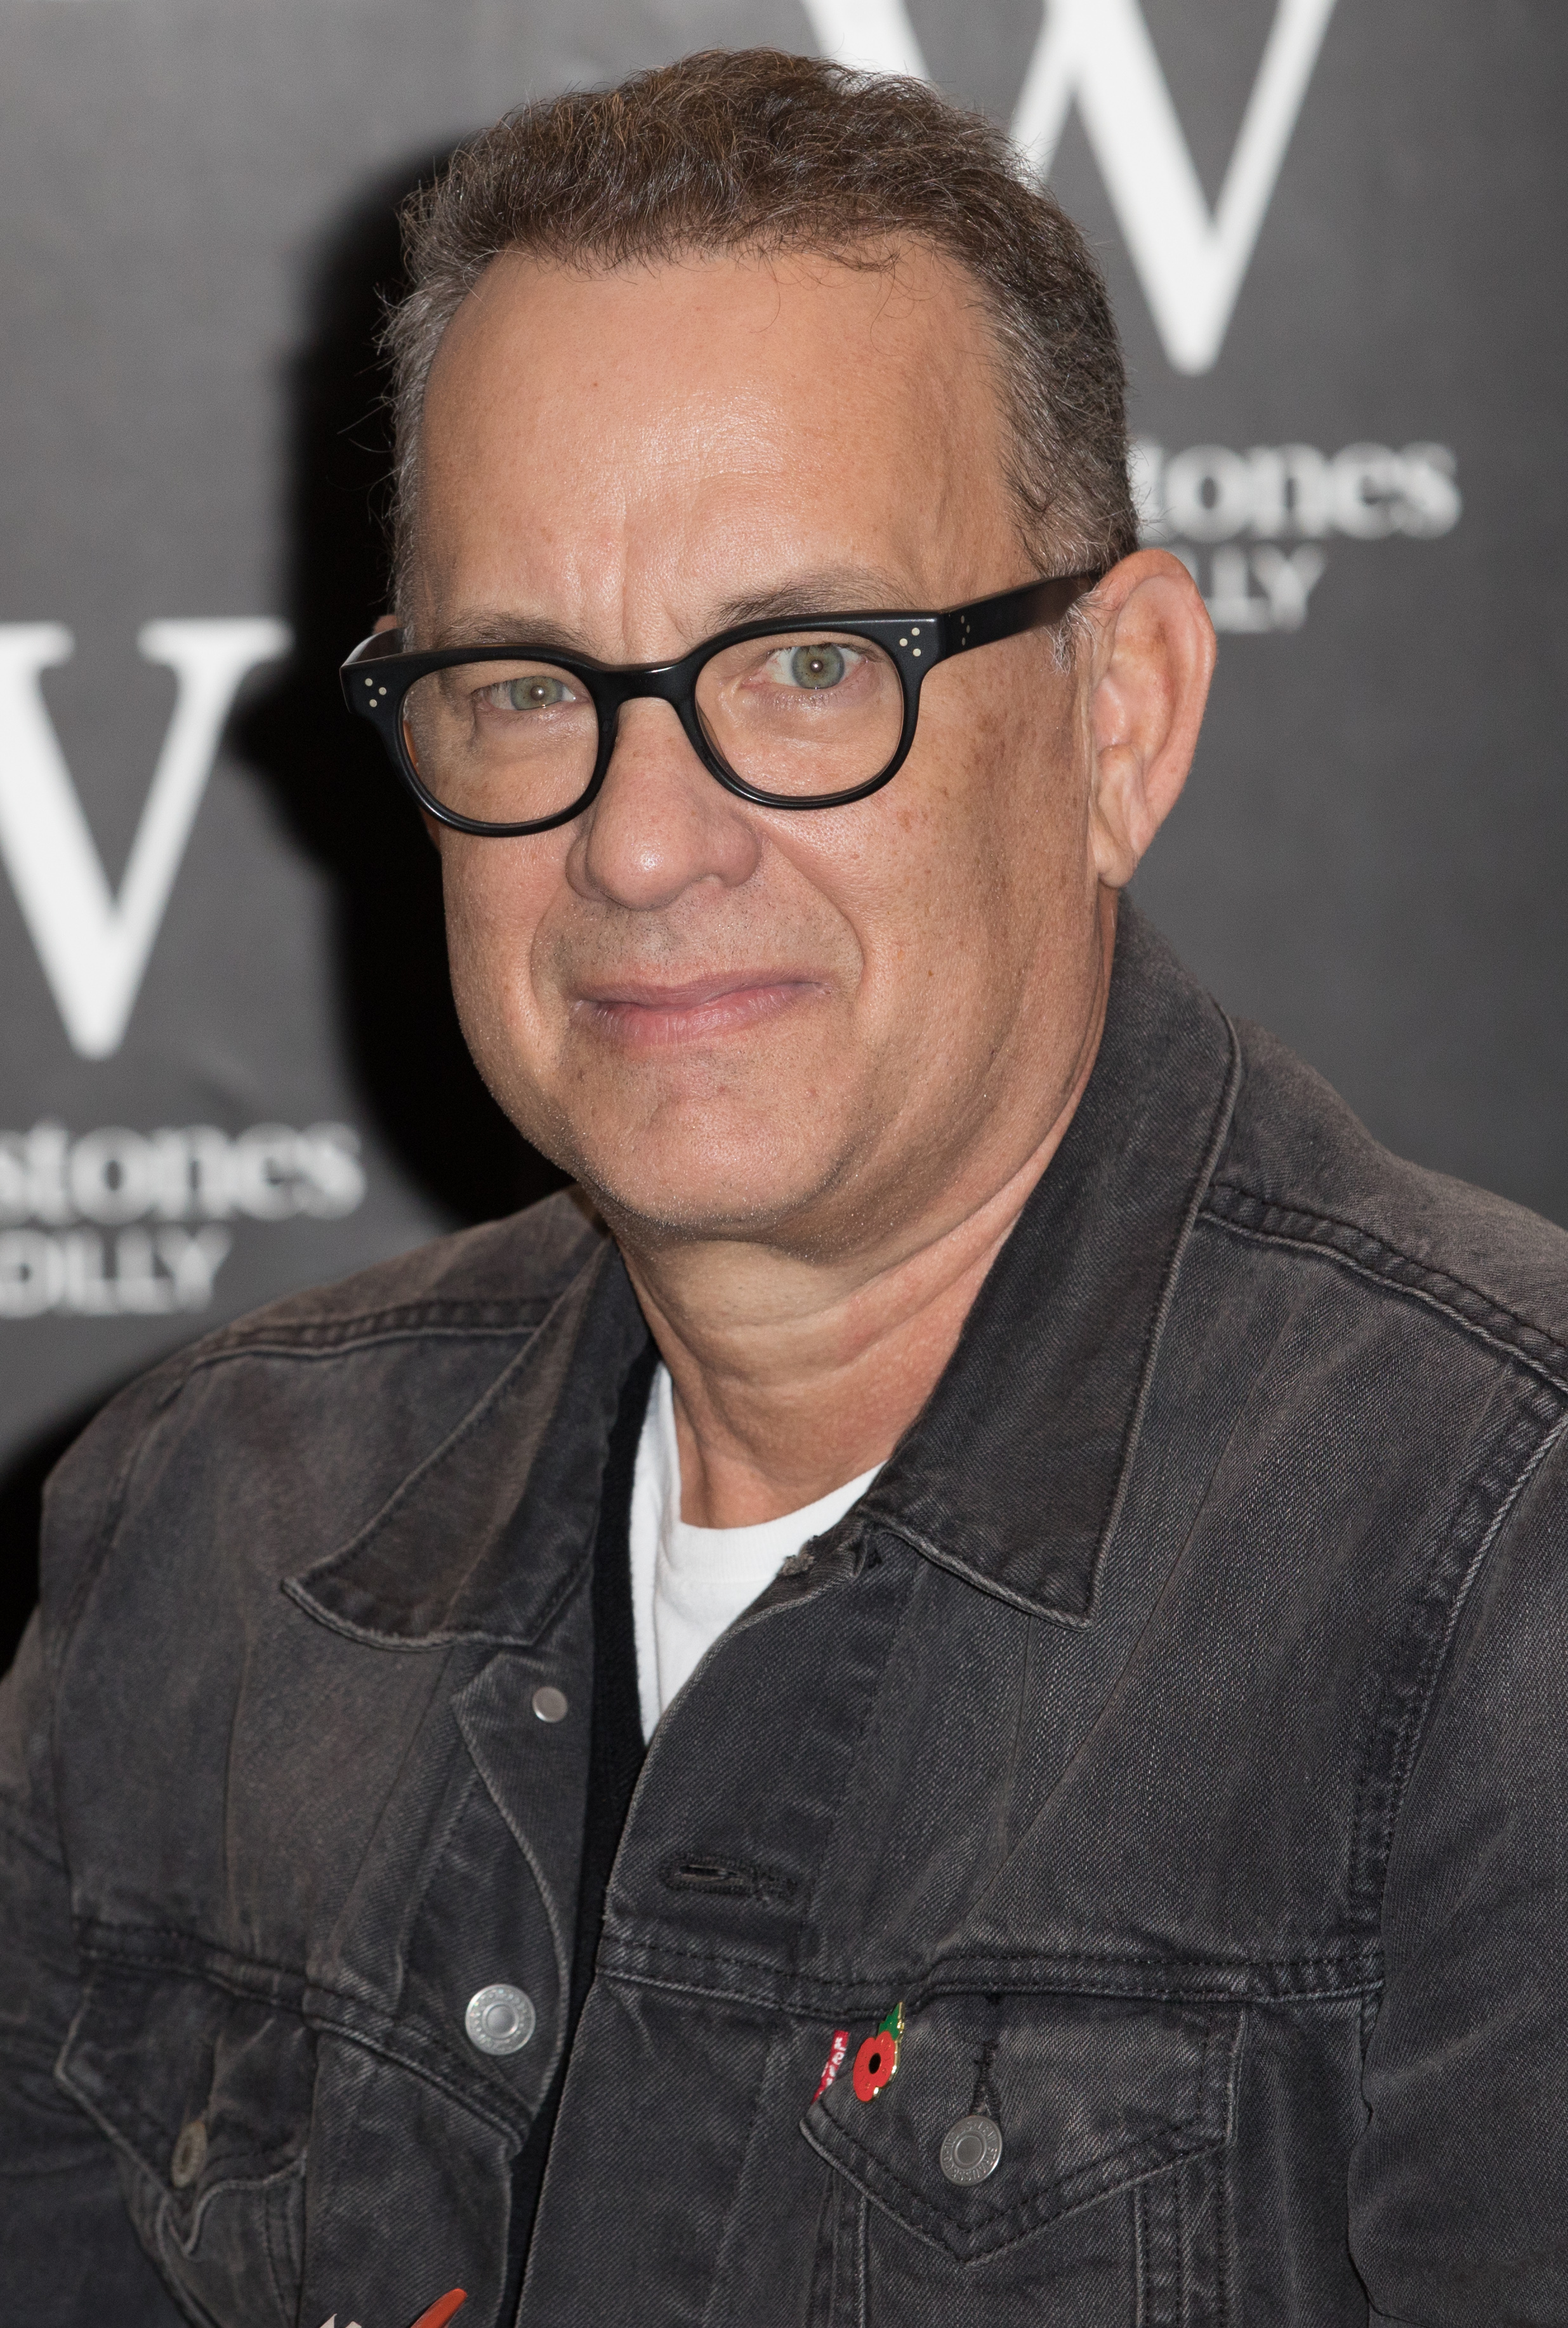 Tom Hanks signs copies of his short stories collection 'Uncommon Type' at Waterstones Piccadilly Featuring: Tom Hanks Where: London, United Kingdom When: 02 Nov 2017 Credit: Phil Lewis/WENN.com